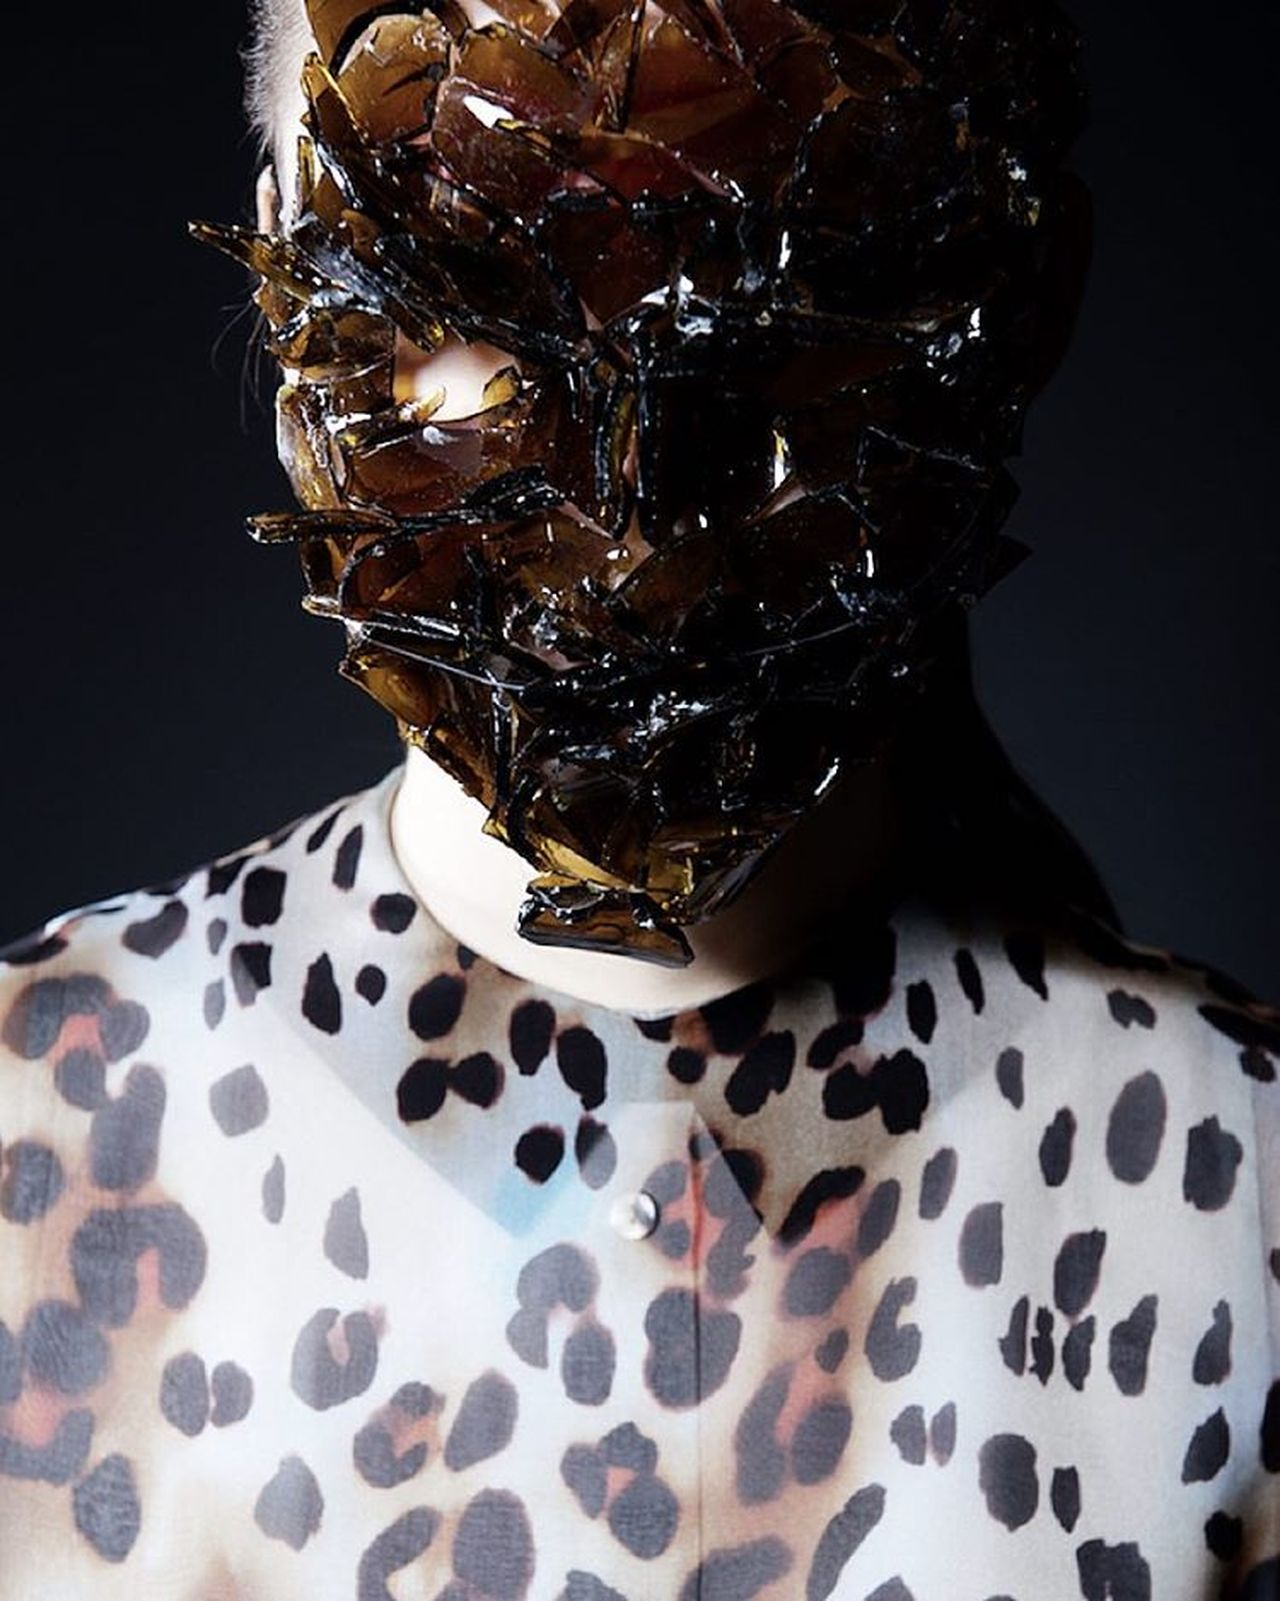 Black Color Blue Close-up Editorial  Editorial Fashion Editorial Photography Editorial Shoot Editorialmakeup Editorialphotographer Editorialphotography Fashion Focus On Foreground Illuminated Mask Masked Maskedportraits Masks Nature No People